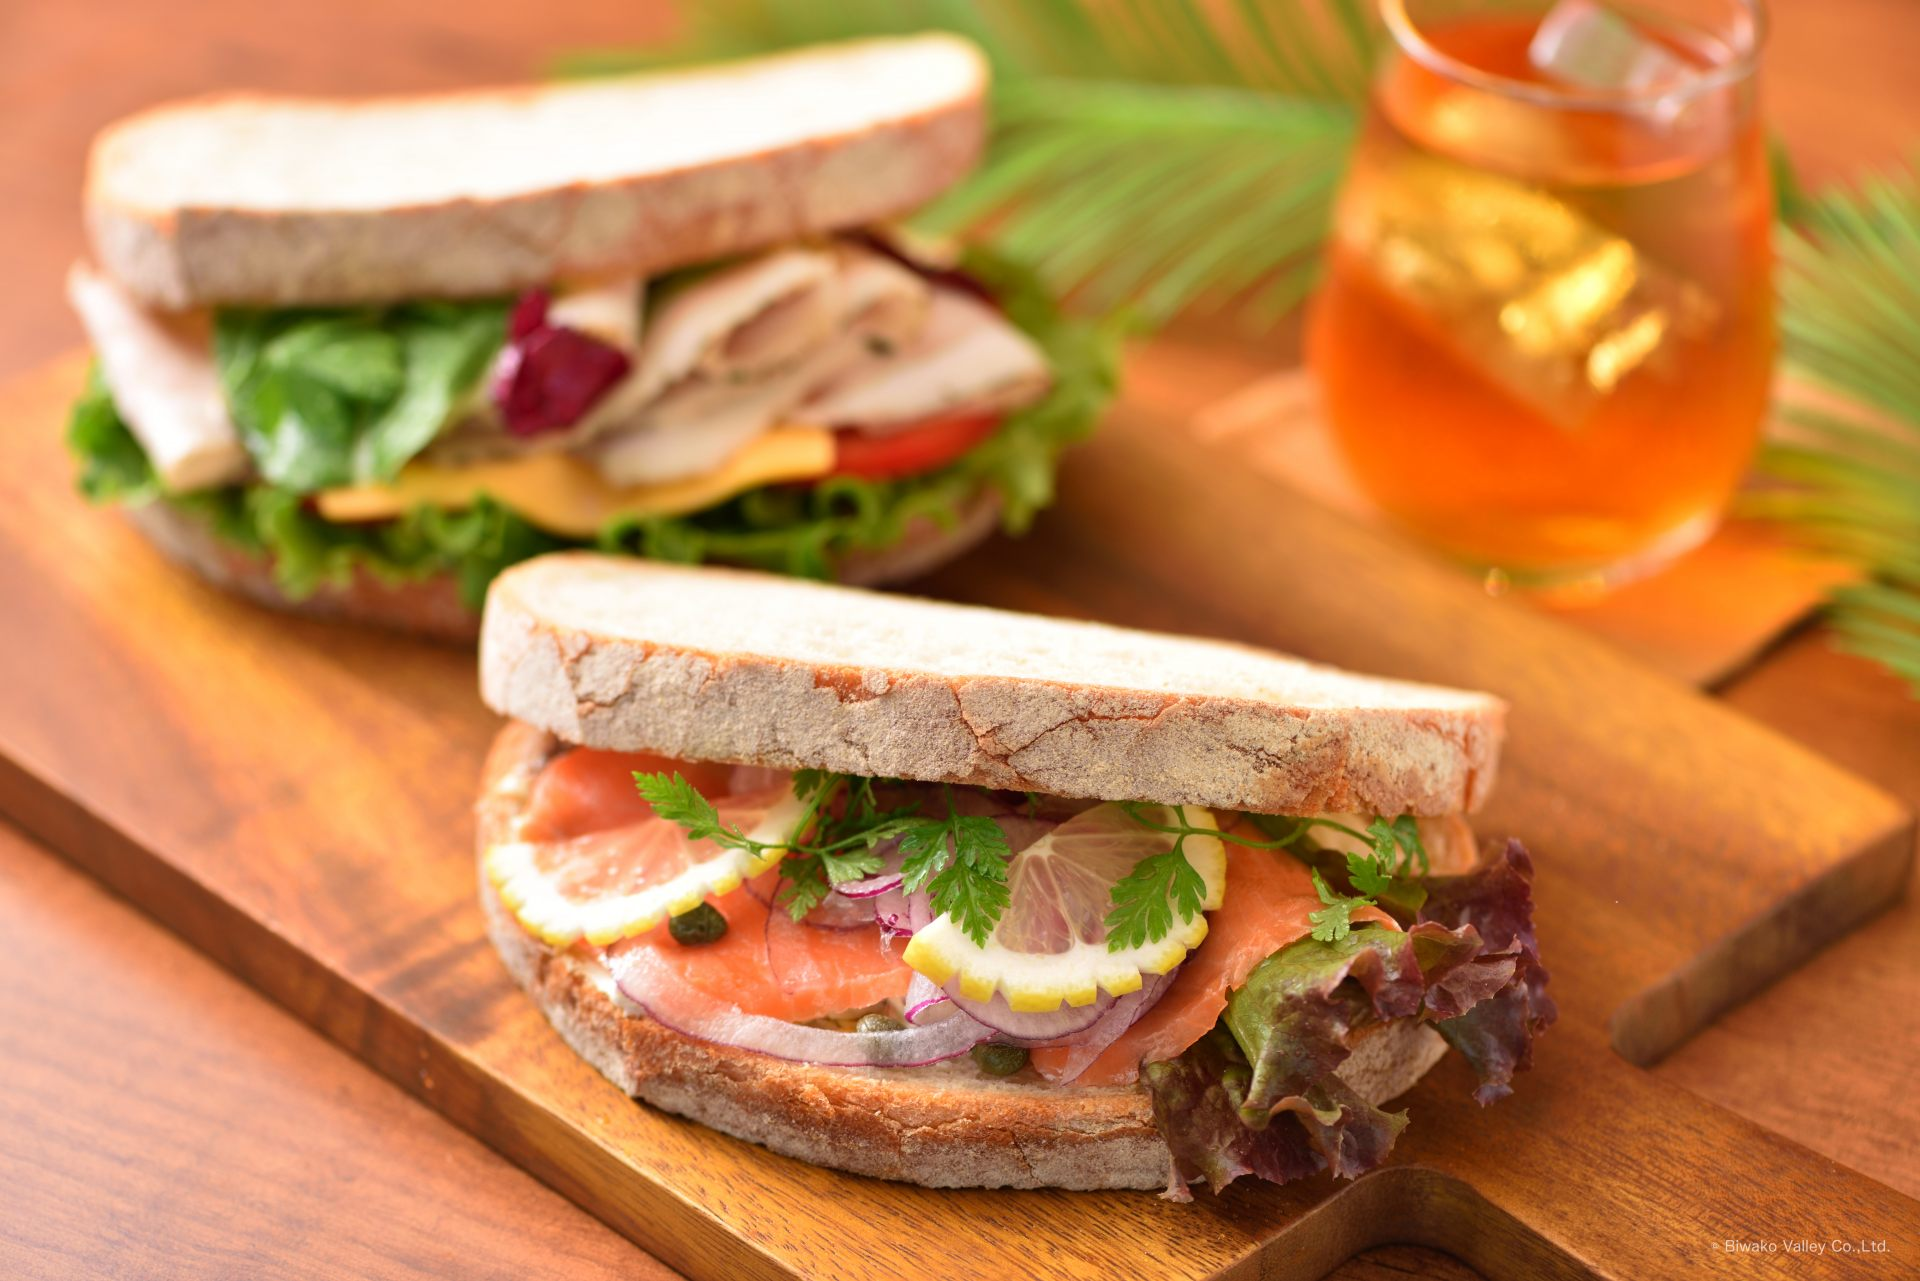 Terrace sandwiches are sold starting at 900 yen in limited quantities. The ingredients on the sandwiches vary by the day.